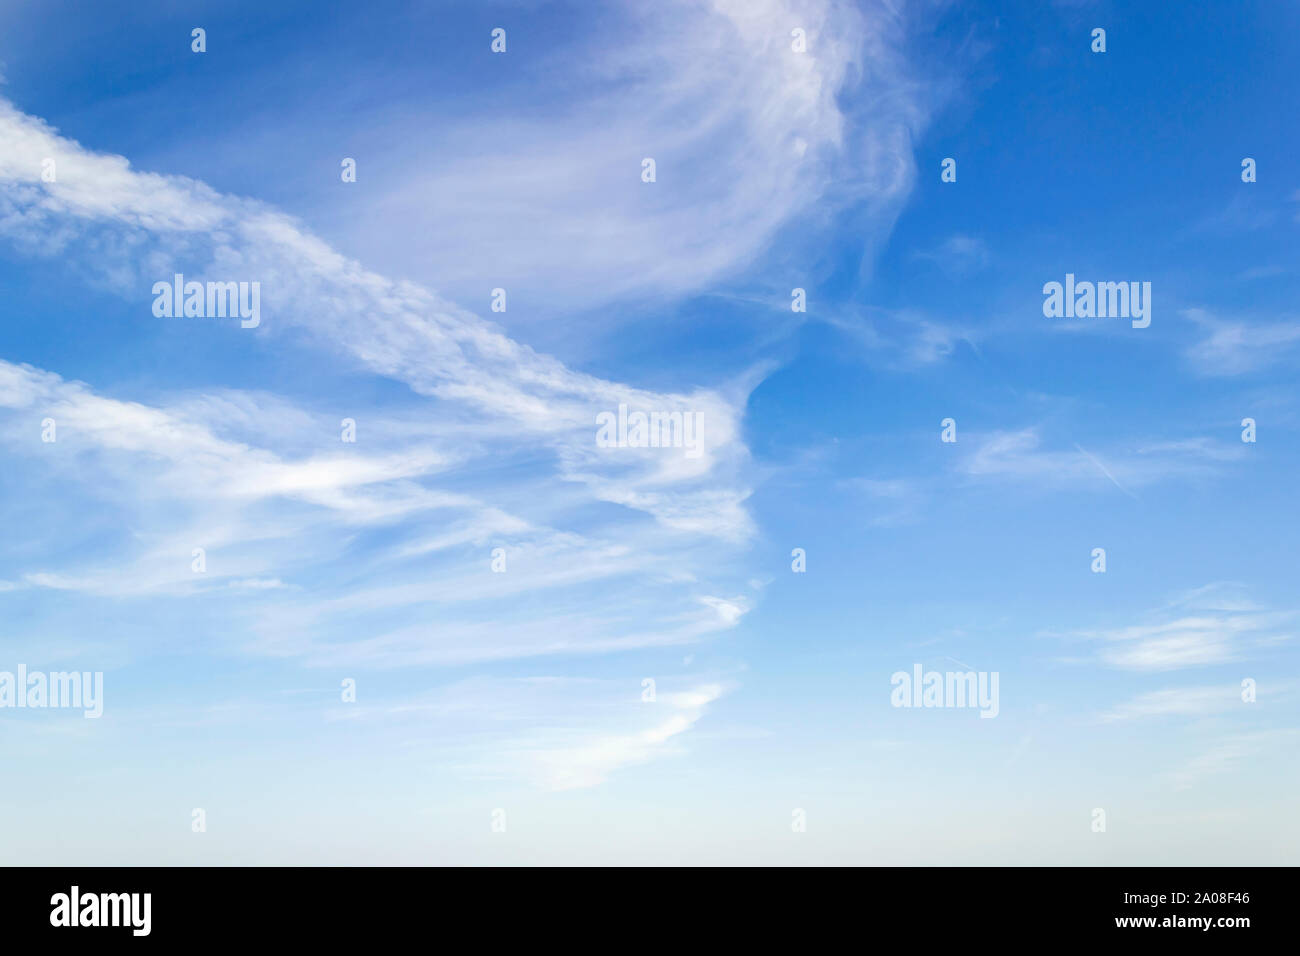 Scenic skyscape with fluffy cirrus and stratus clouds in the stratosphere. Light spindrift clouds high in the blue sky. Different cloud types. Stock Photo